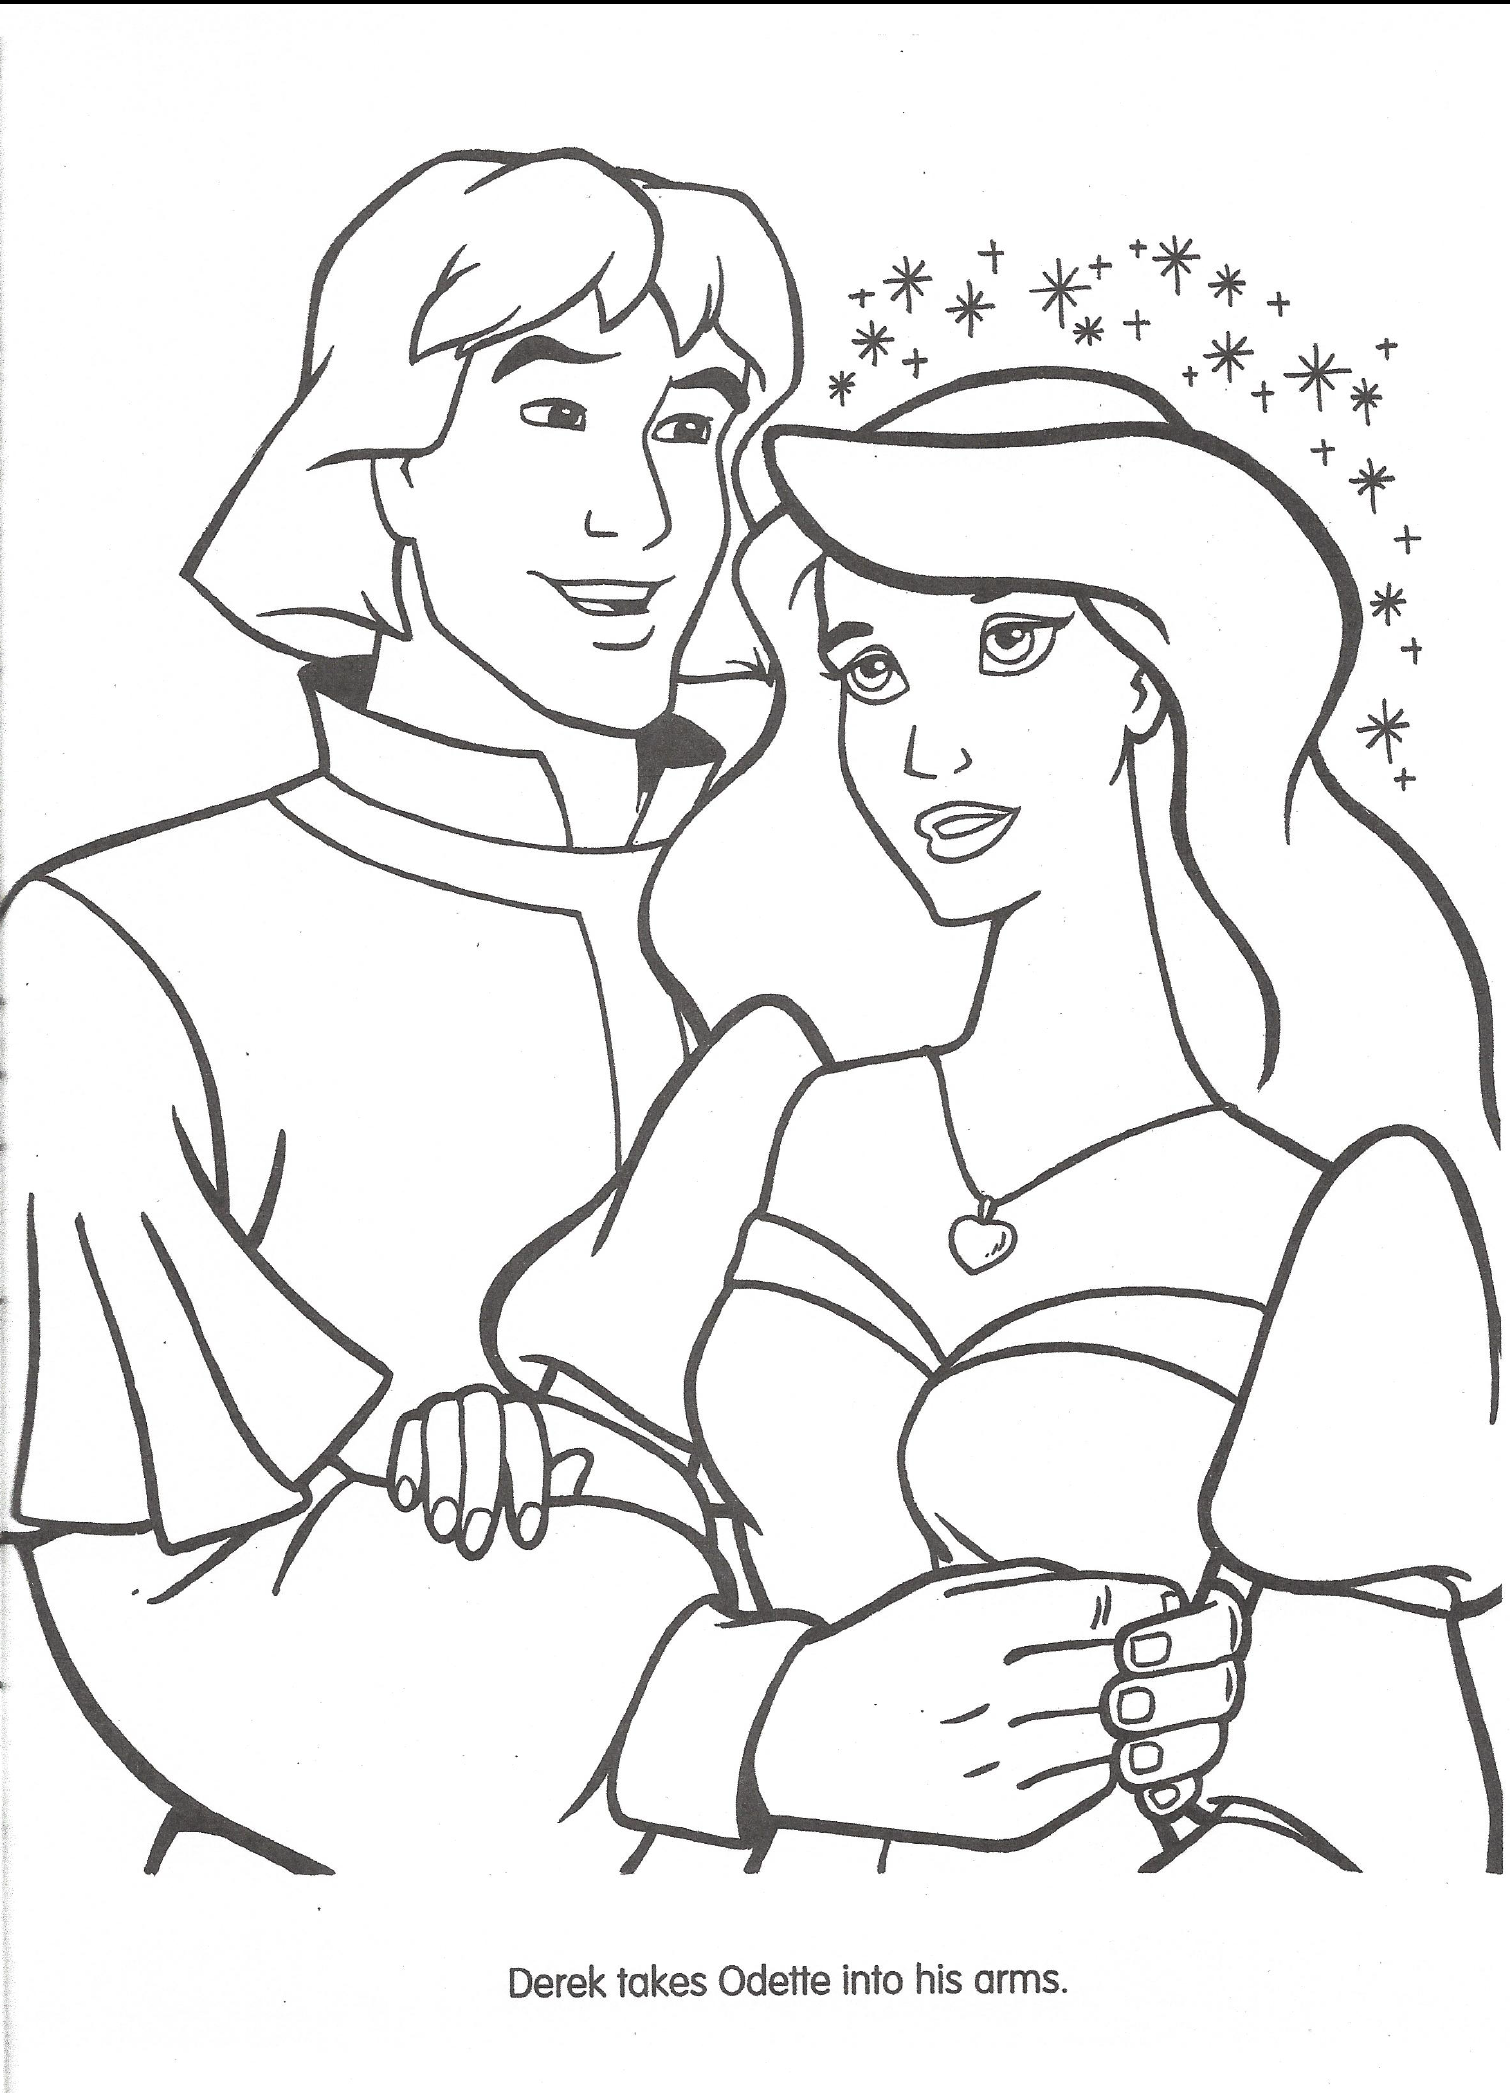 disney swan princess coloring pages - photo#13